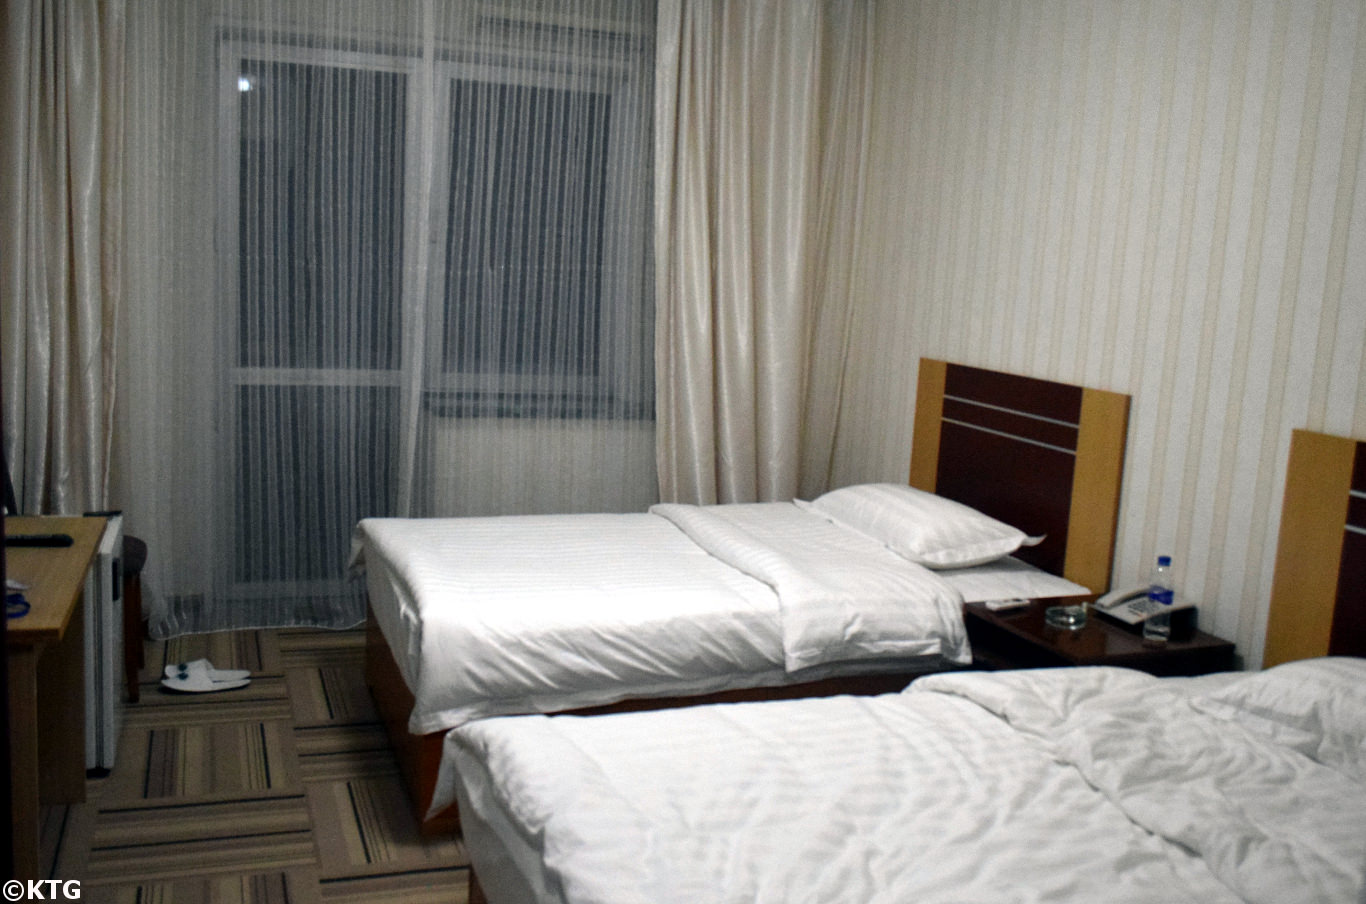 Room in the Ryanggang Hotel lobby in Pyongyang, North Korea (DPRK). This is a first class hotel in North Korea. Picture taken by KTG Tours